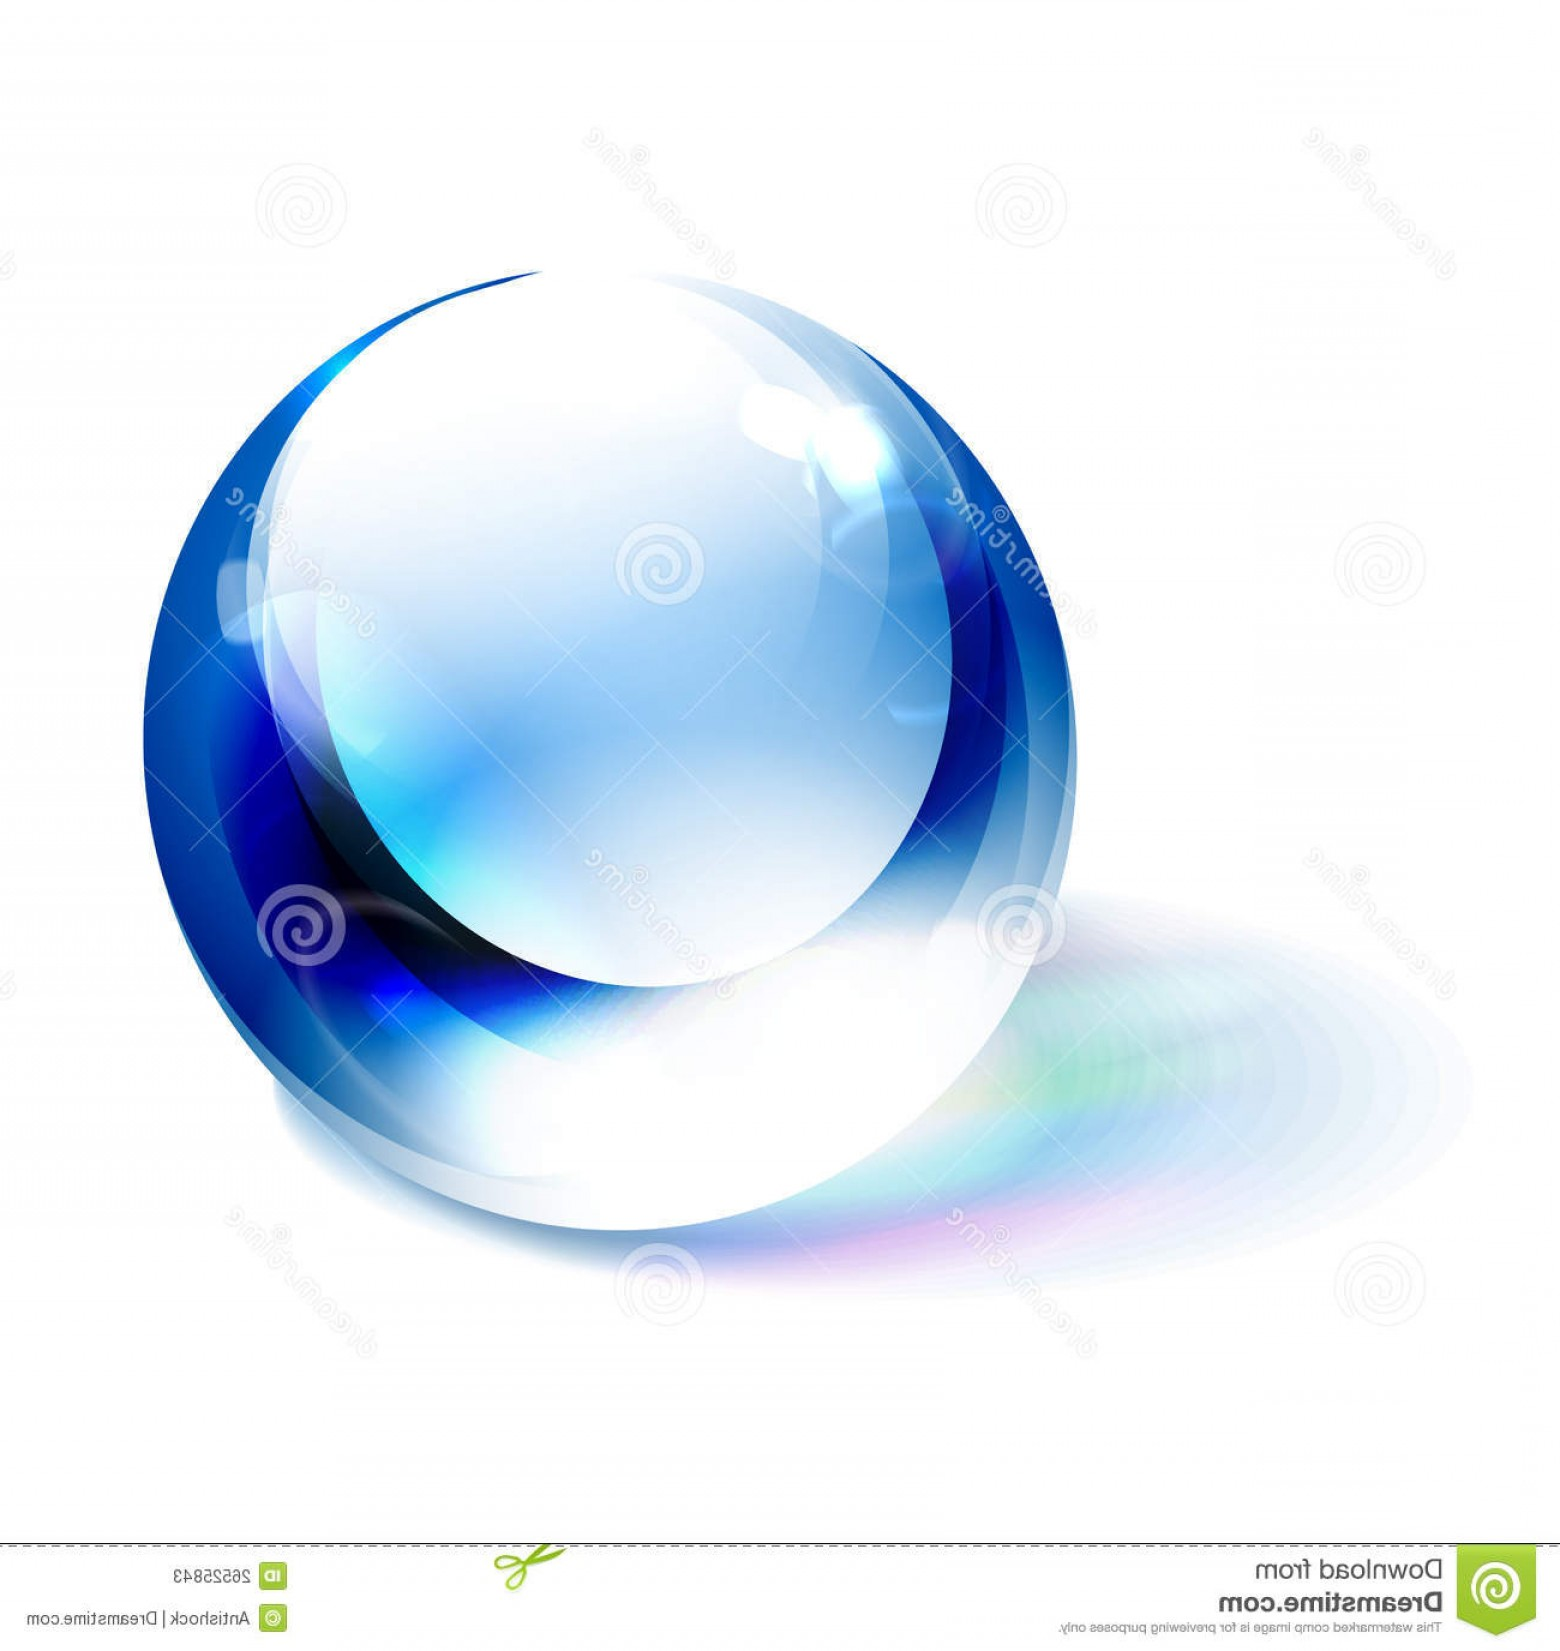 Vector Sphere Marble: Stock Photos Vector Blue Shiny Sphere Image